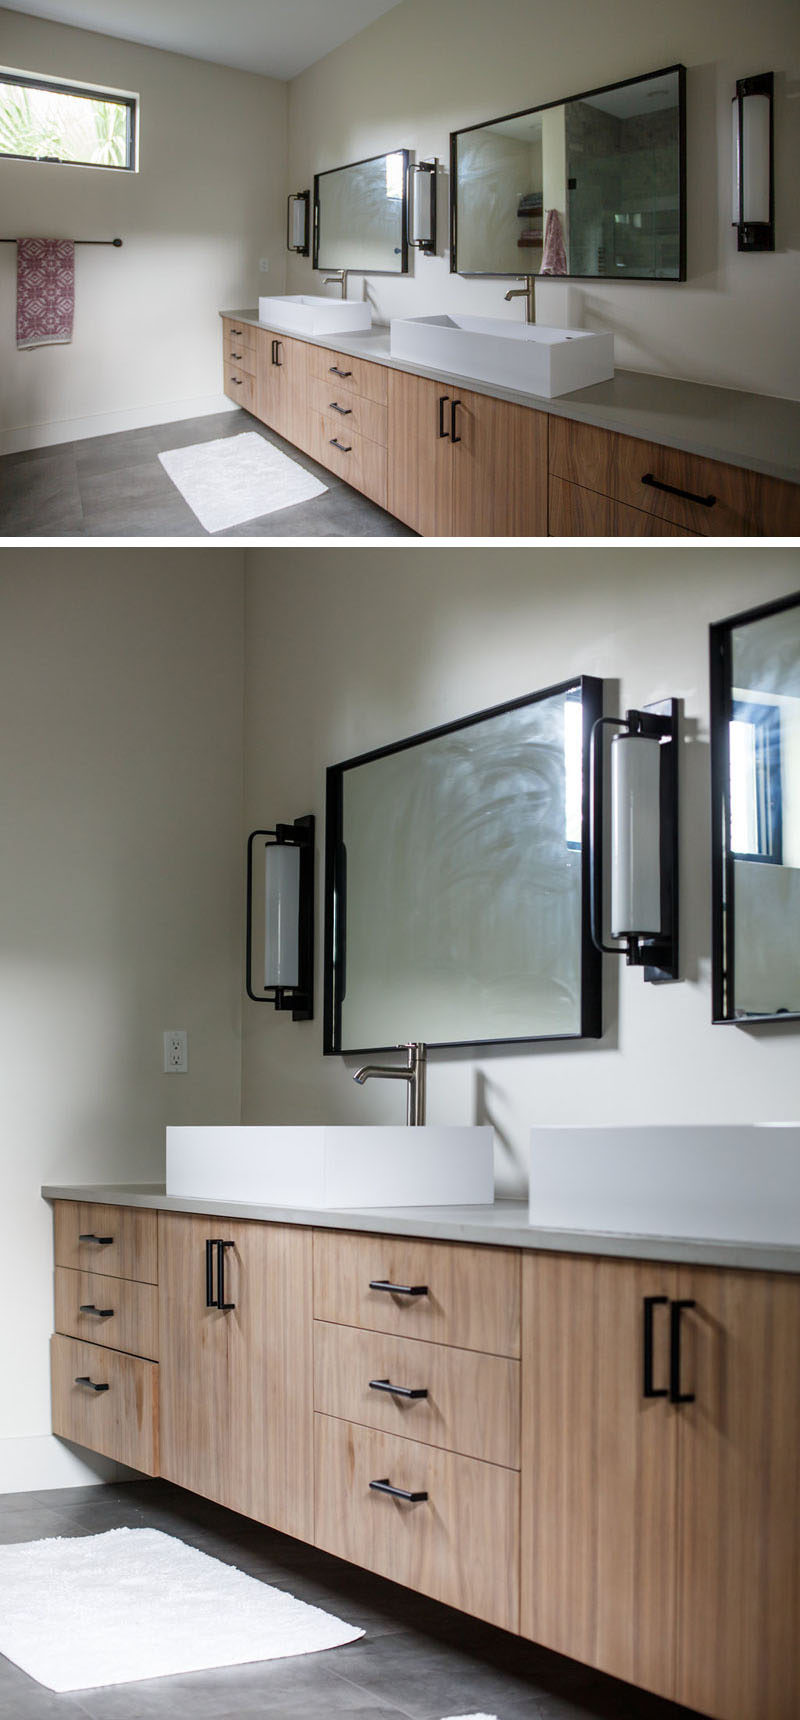 In this large bathroom, there's a wall-to-wall vanity with plenty of counter space and storage. #Bathroom #ModernBathroom #InteriorDesign #LargeVanity